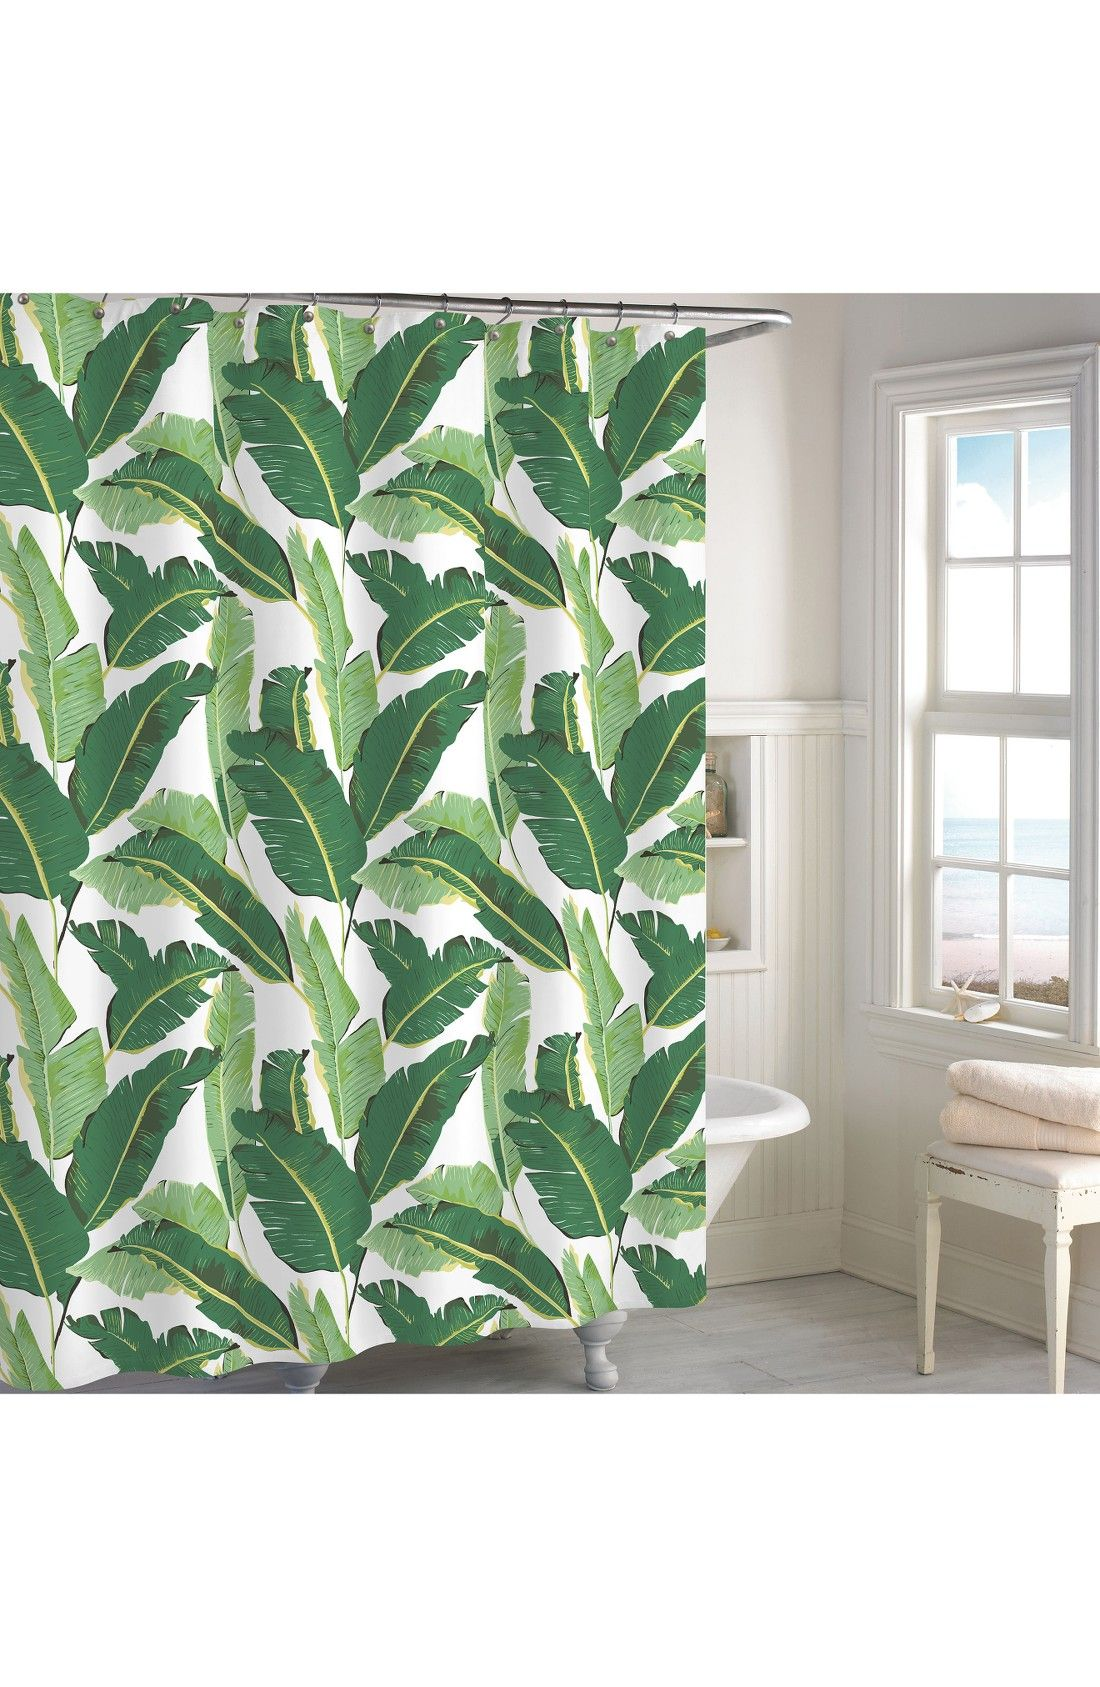 Miami Leaf Shower Curtain | Bathroom | Pinterest | Miami, Leaves and ...